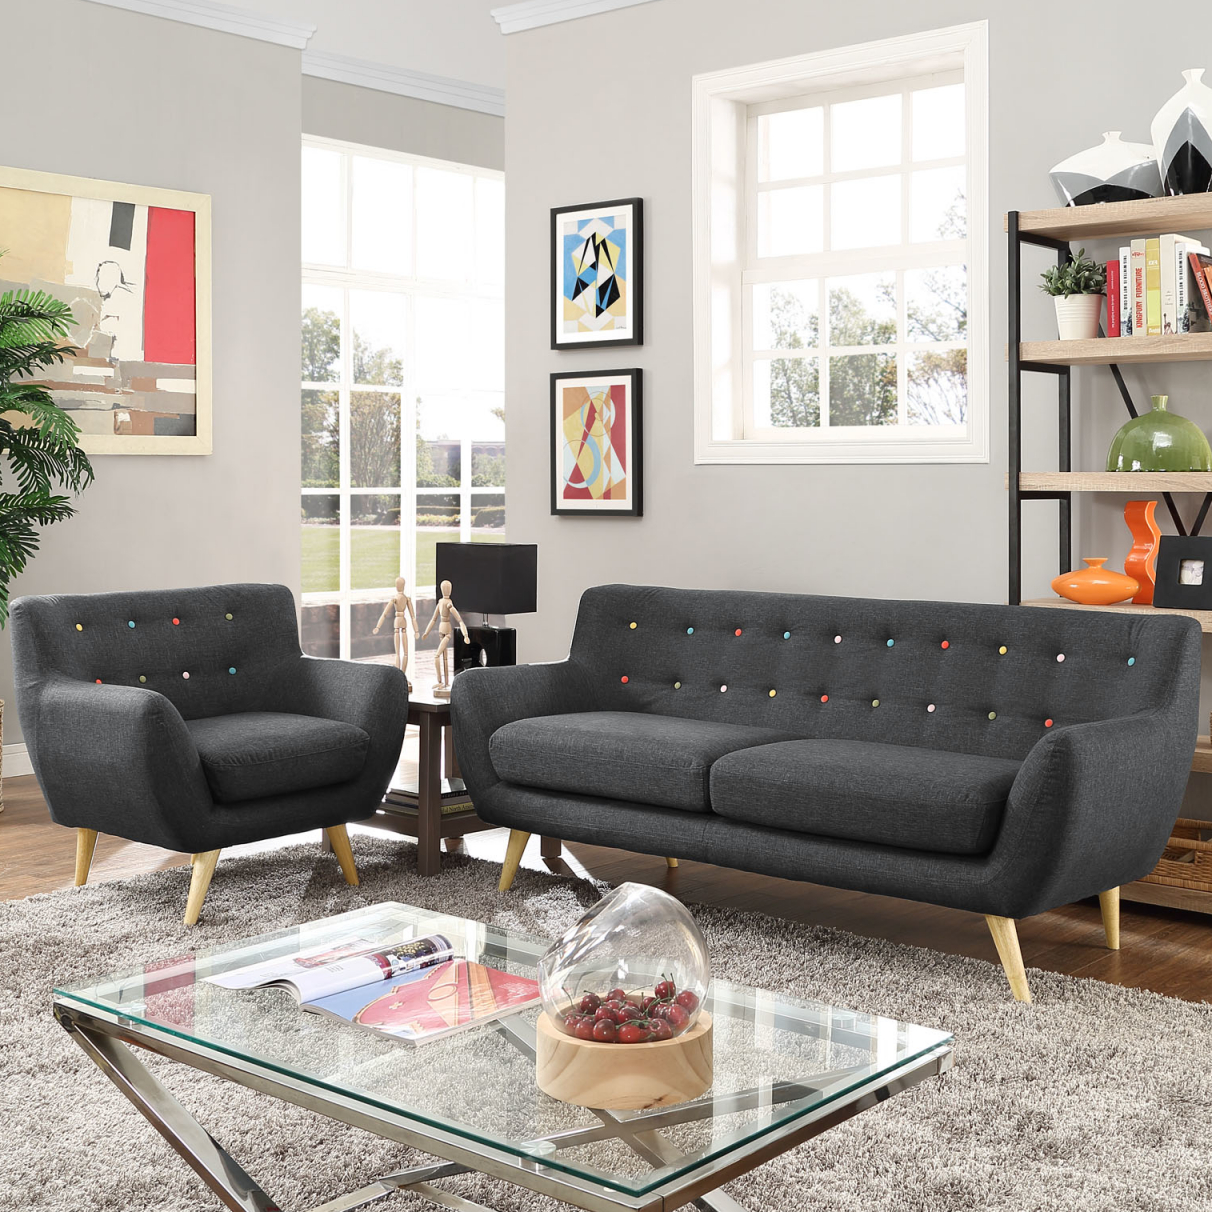 Modern & Contemporary Living Room Furniture | Allmodern in Unique Living Room Furniture Sets